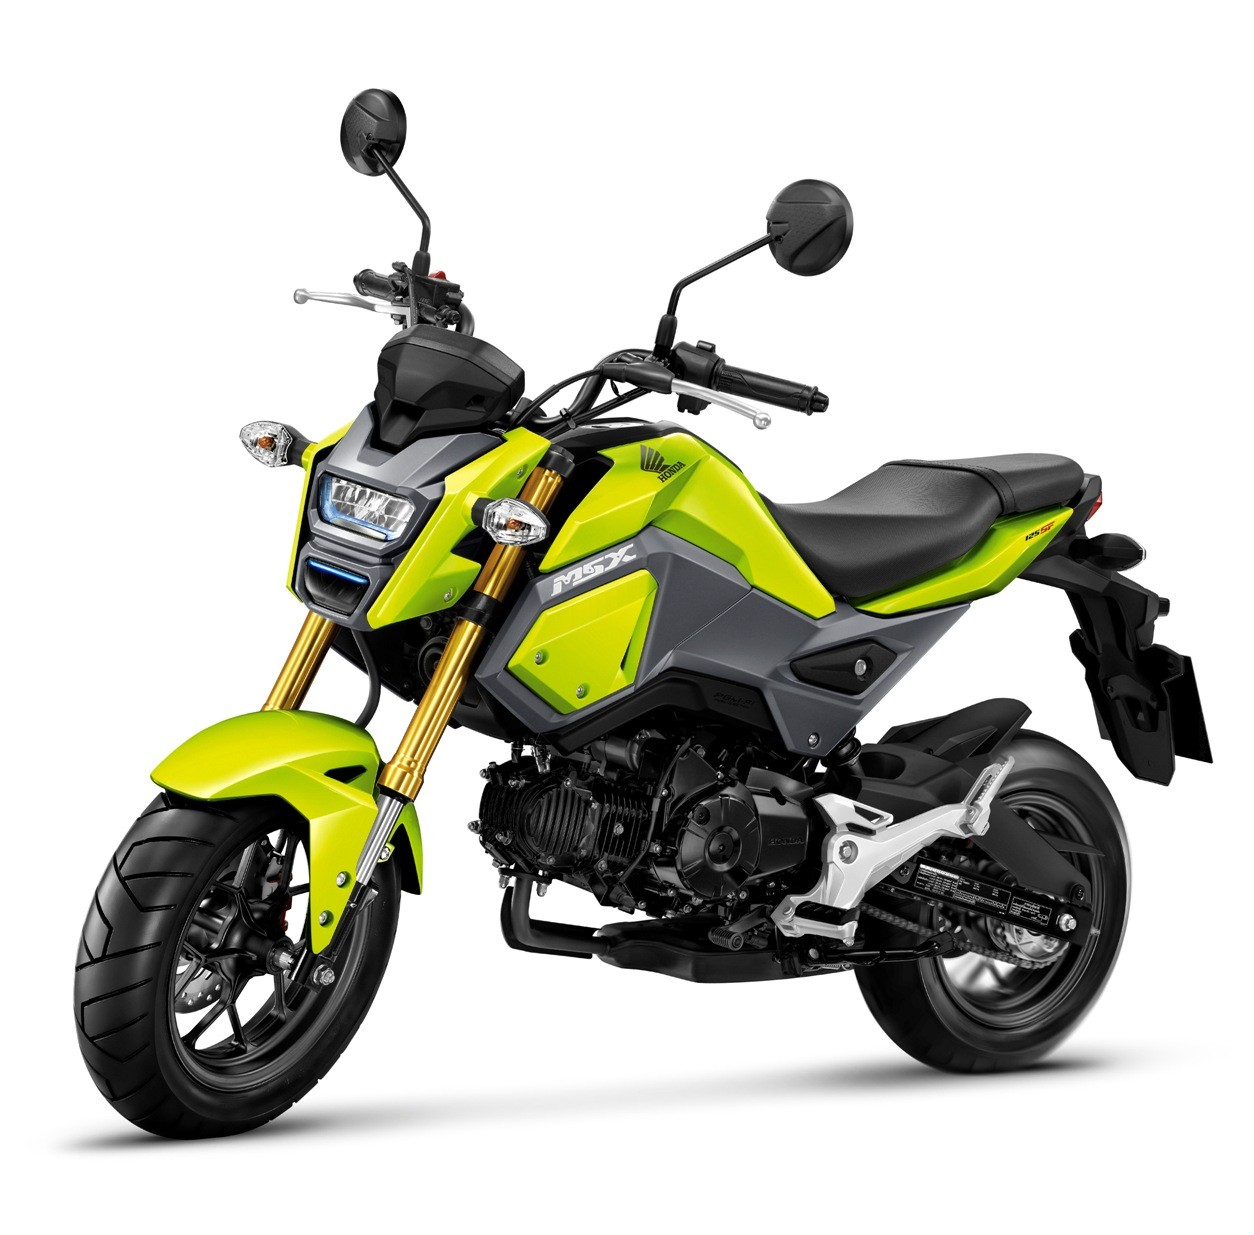 honda grom msx125sf looks cool in this 5 part video story autoevolution. Black Bedroom Furniture Sets. Home Design Ideas